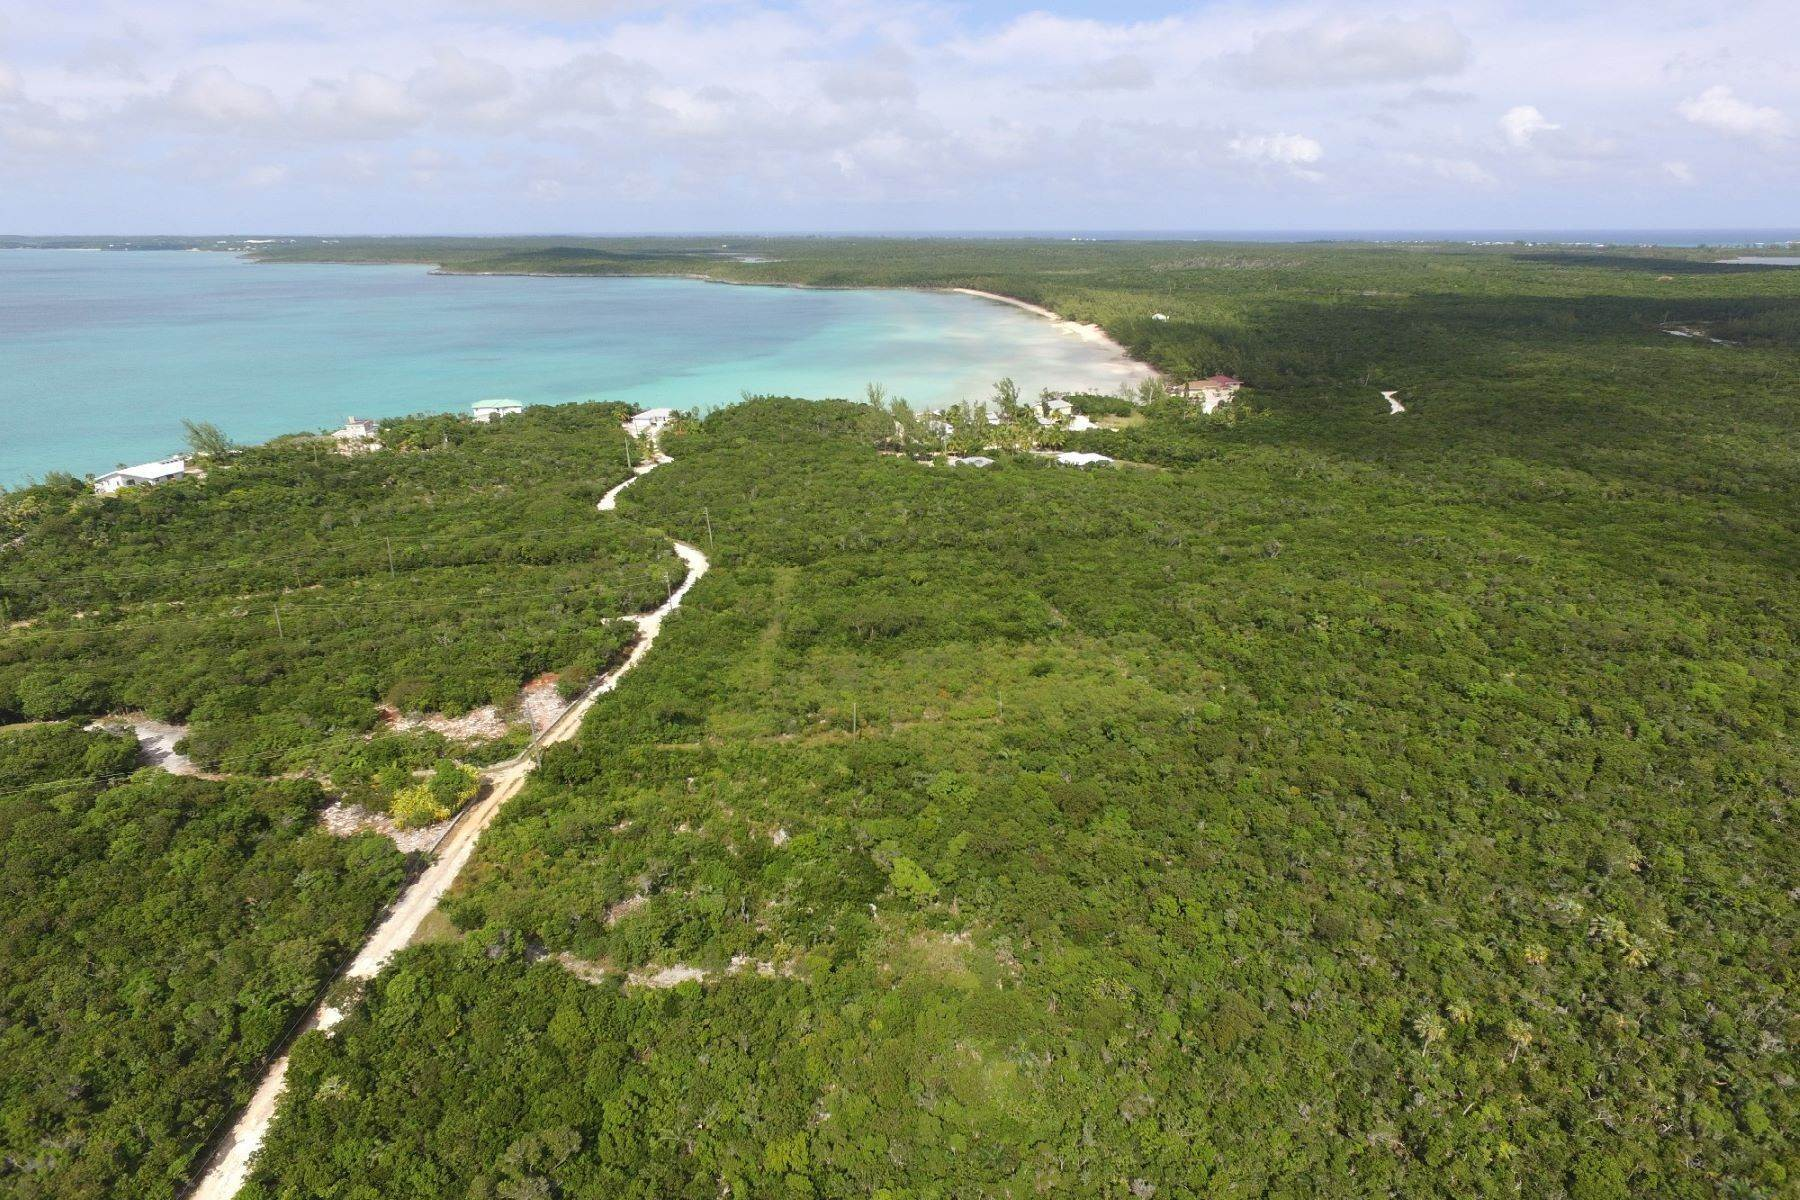 Land for Sale at FOR YOUR NEXT ADVENTURE Ten Bay Beach, Savannah Sound, Eleuthera Bahamas